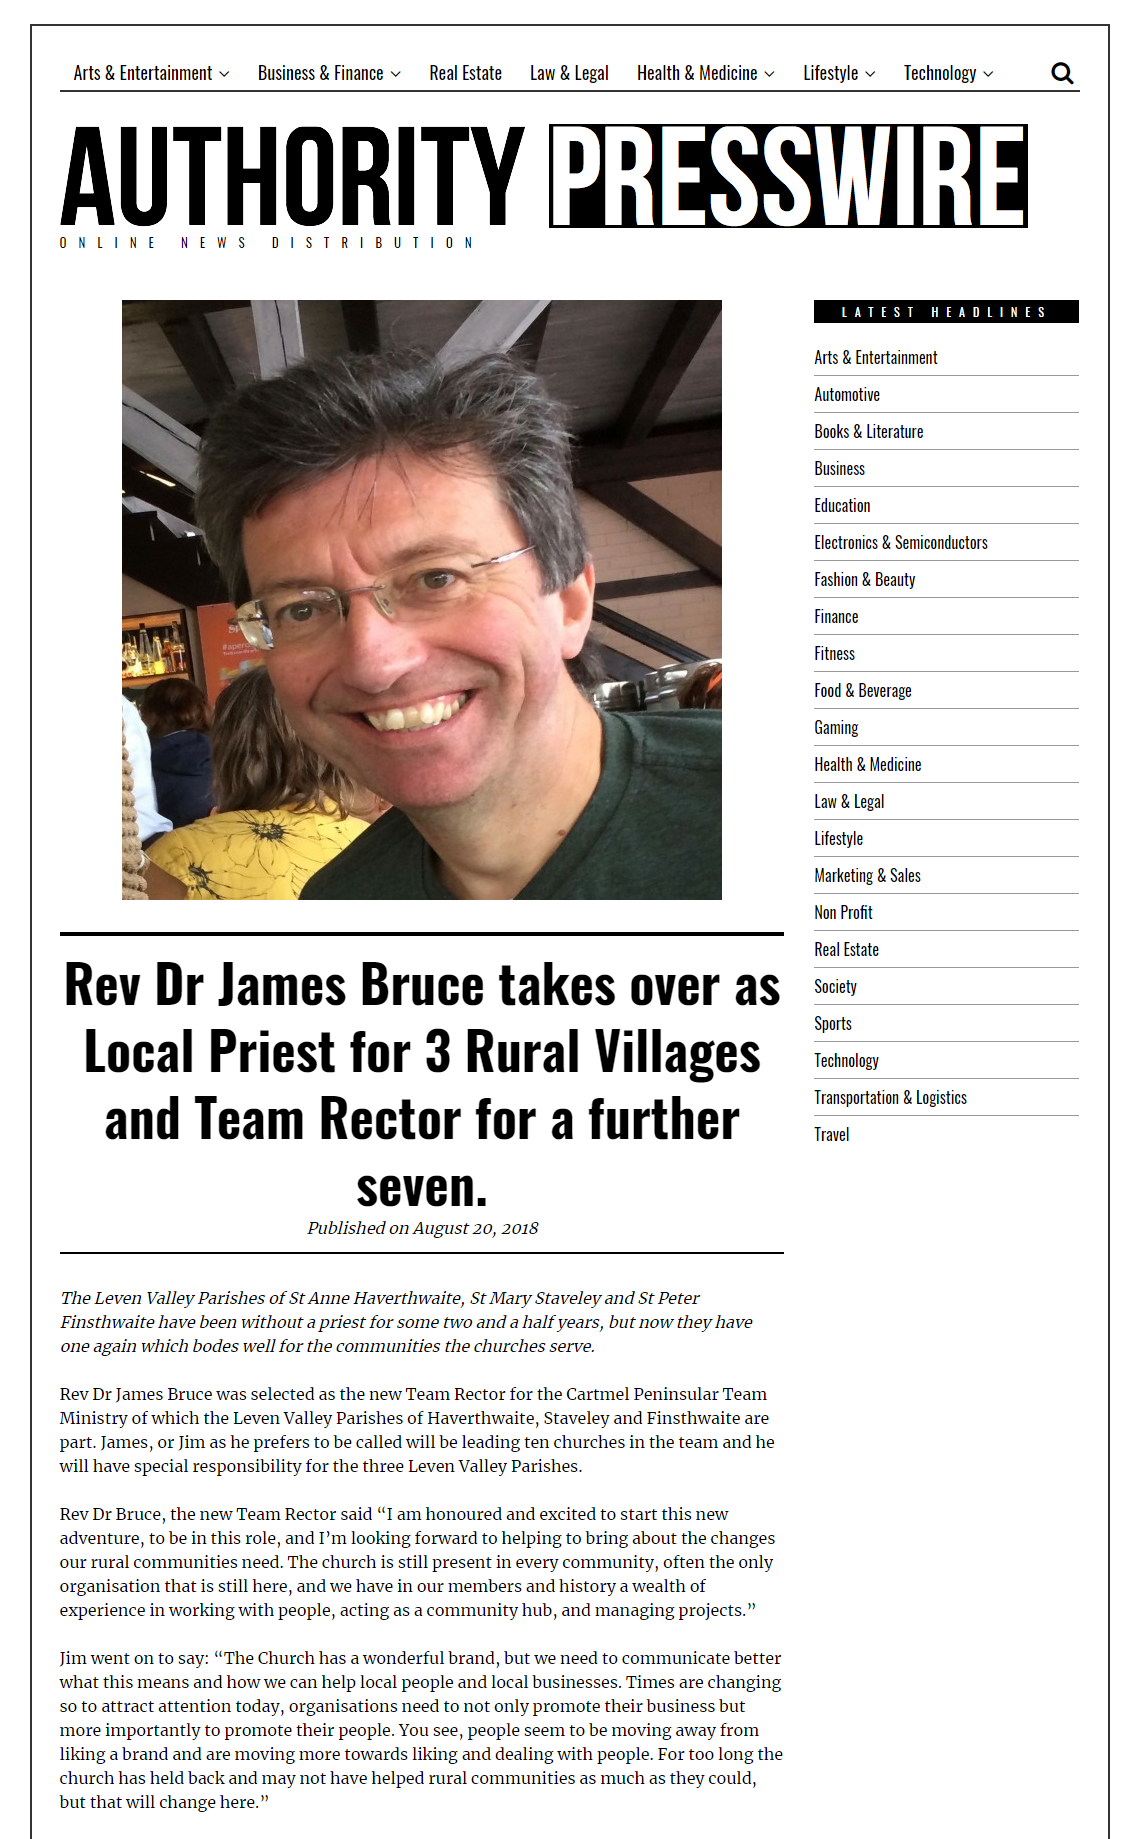 Rev Dr James Bruce